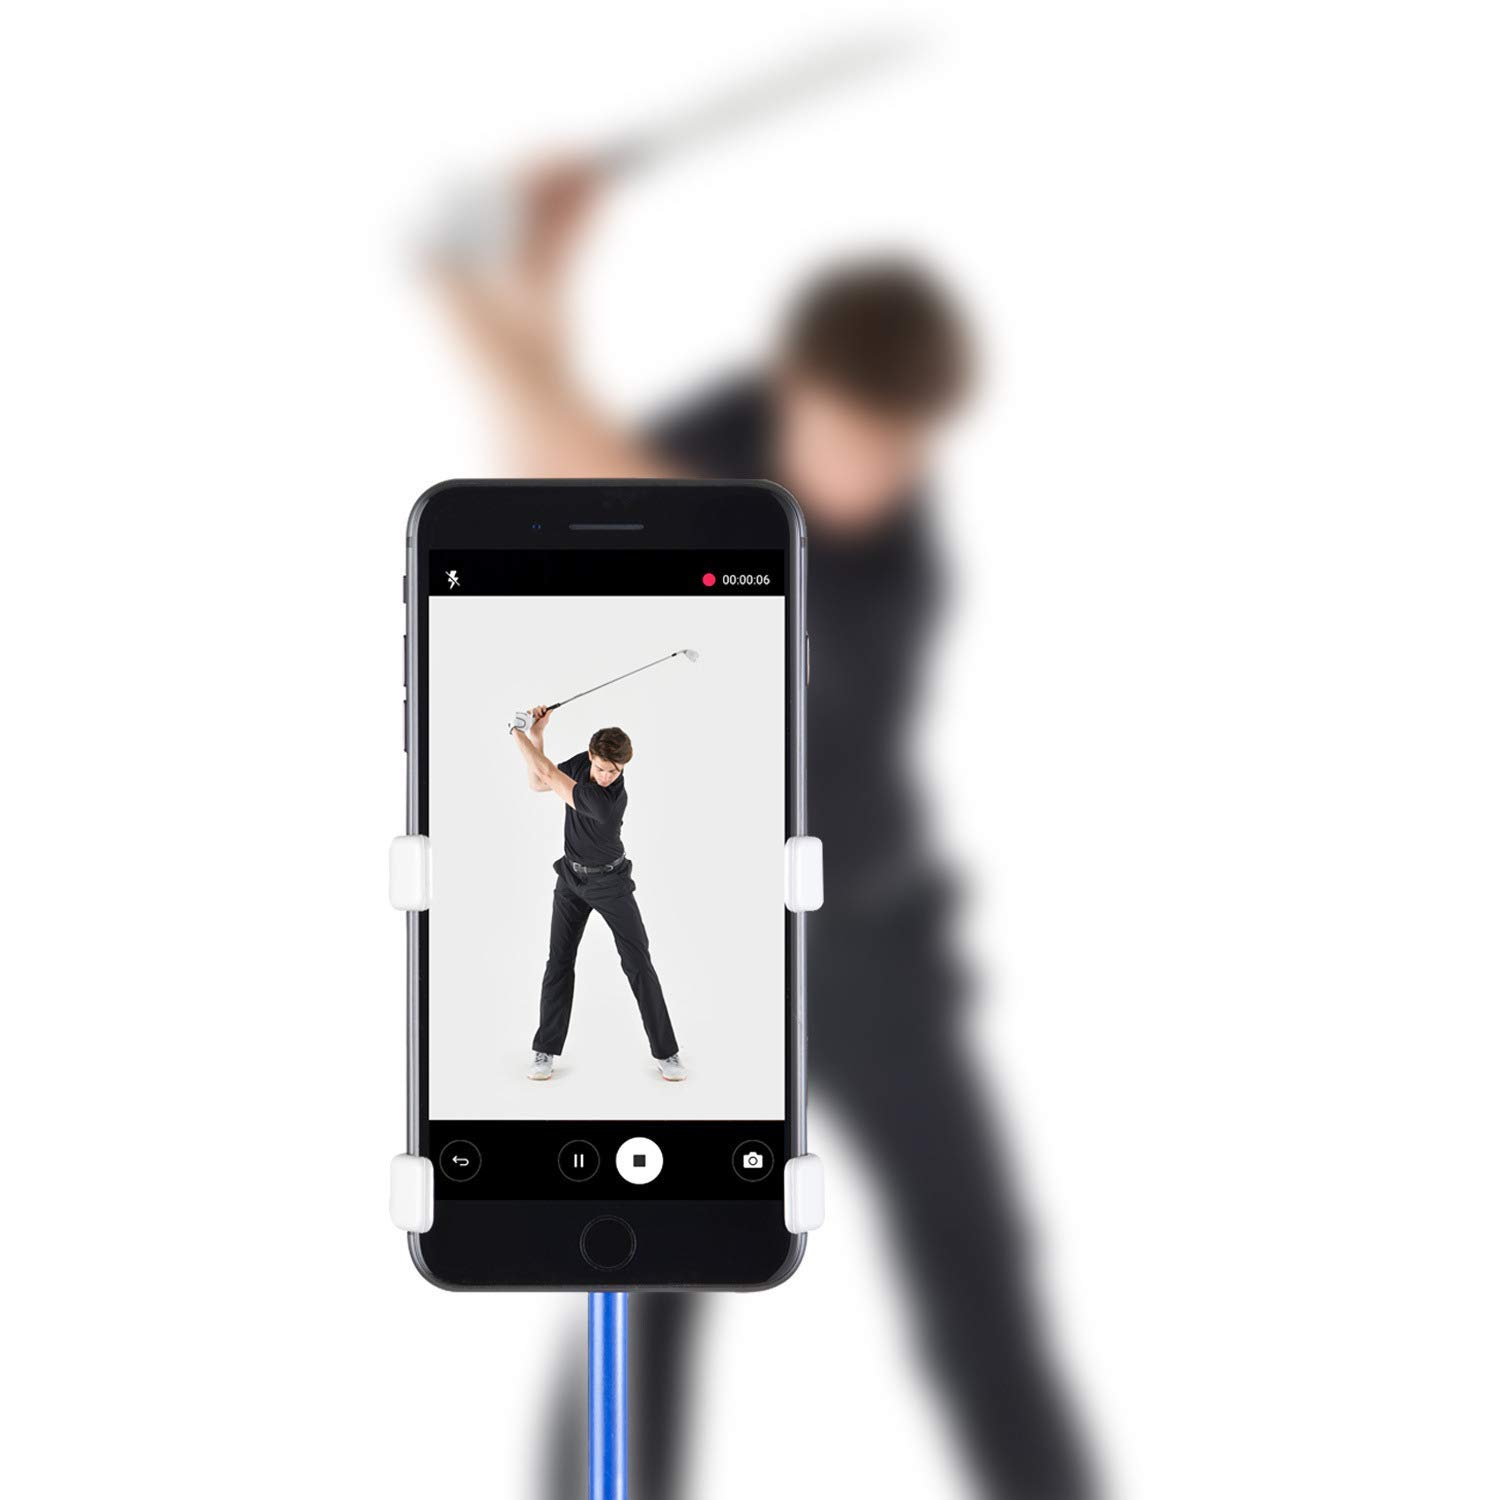 SelfieGolf Record Golf Swing-Cell Phone Clip Holder and Training Aid by TM-Golf Accessories |The Winner of The PGA Best of 2017 |Compatible with Any Smart Phone,Quick Set Up (Matte Black) by Selfie Golf